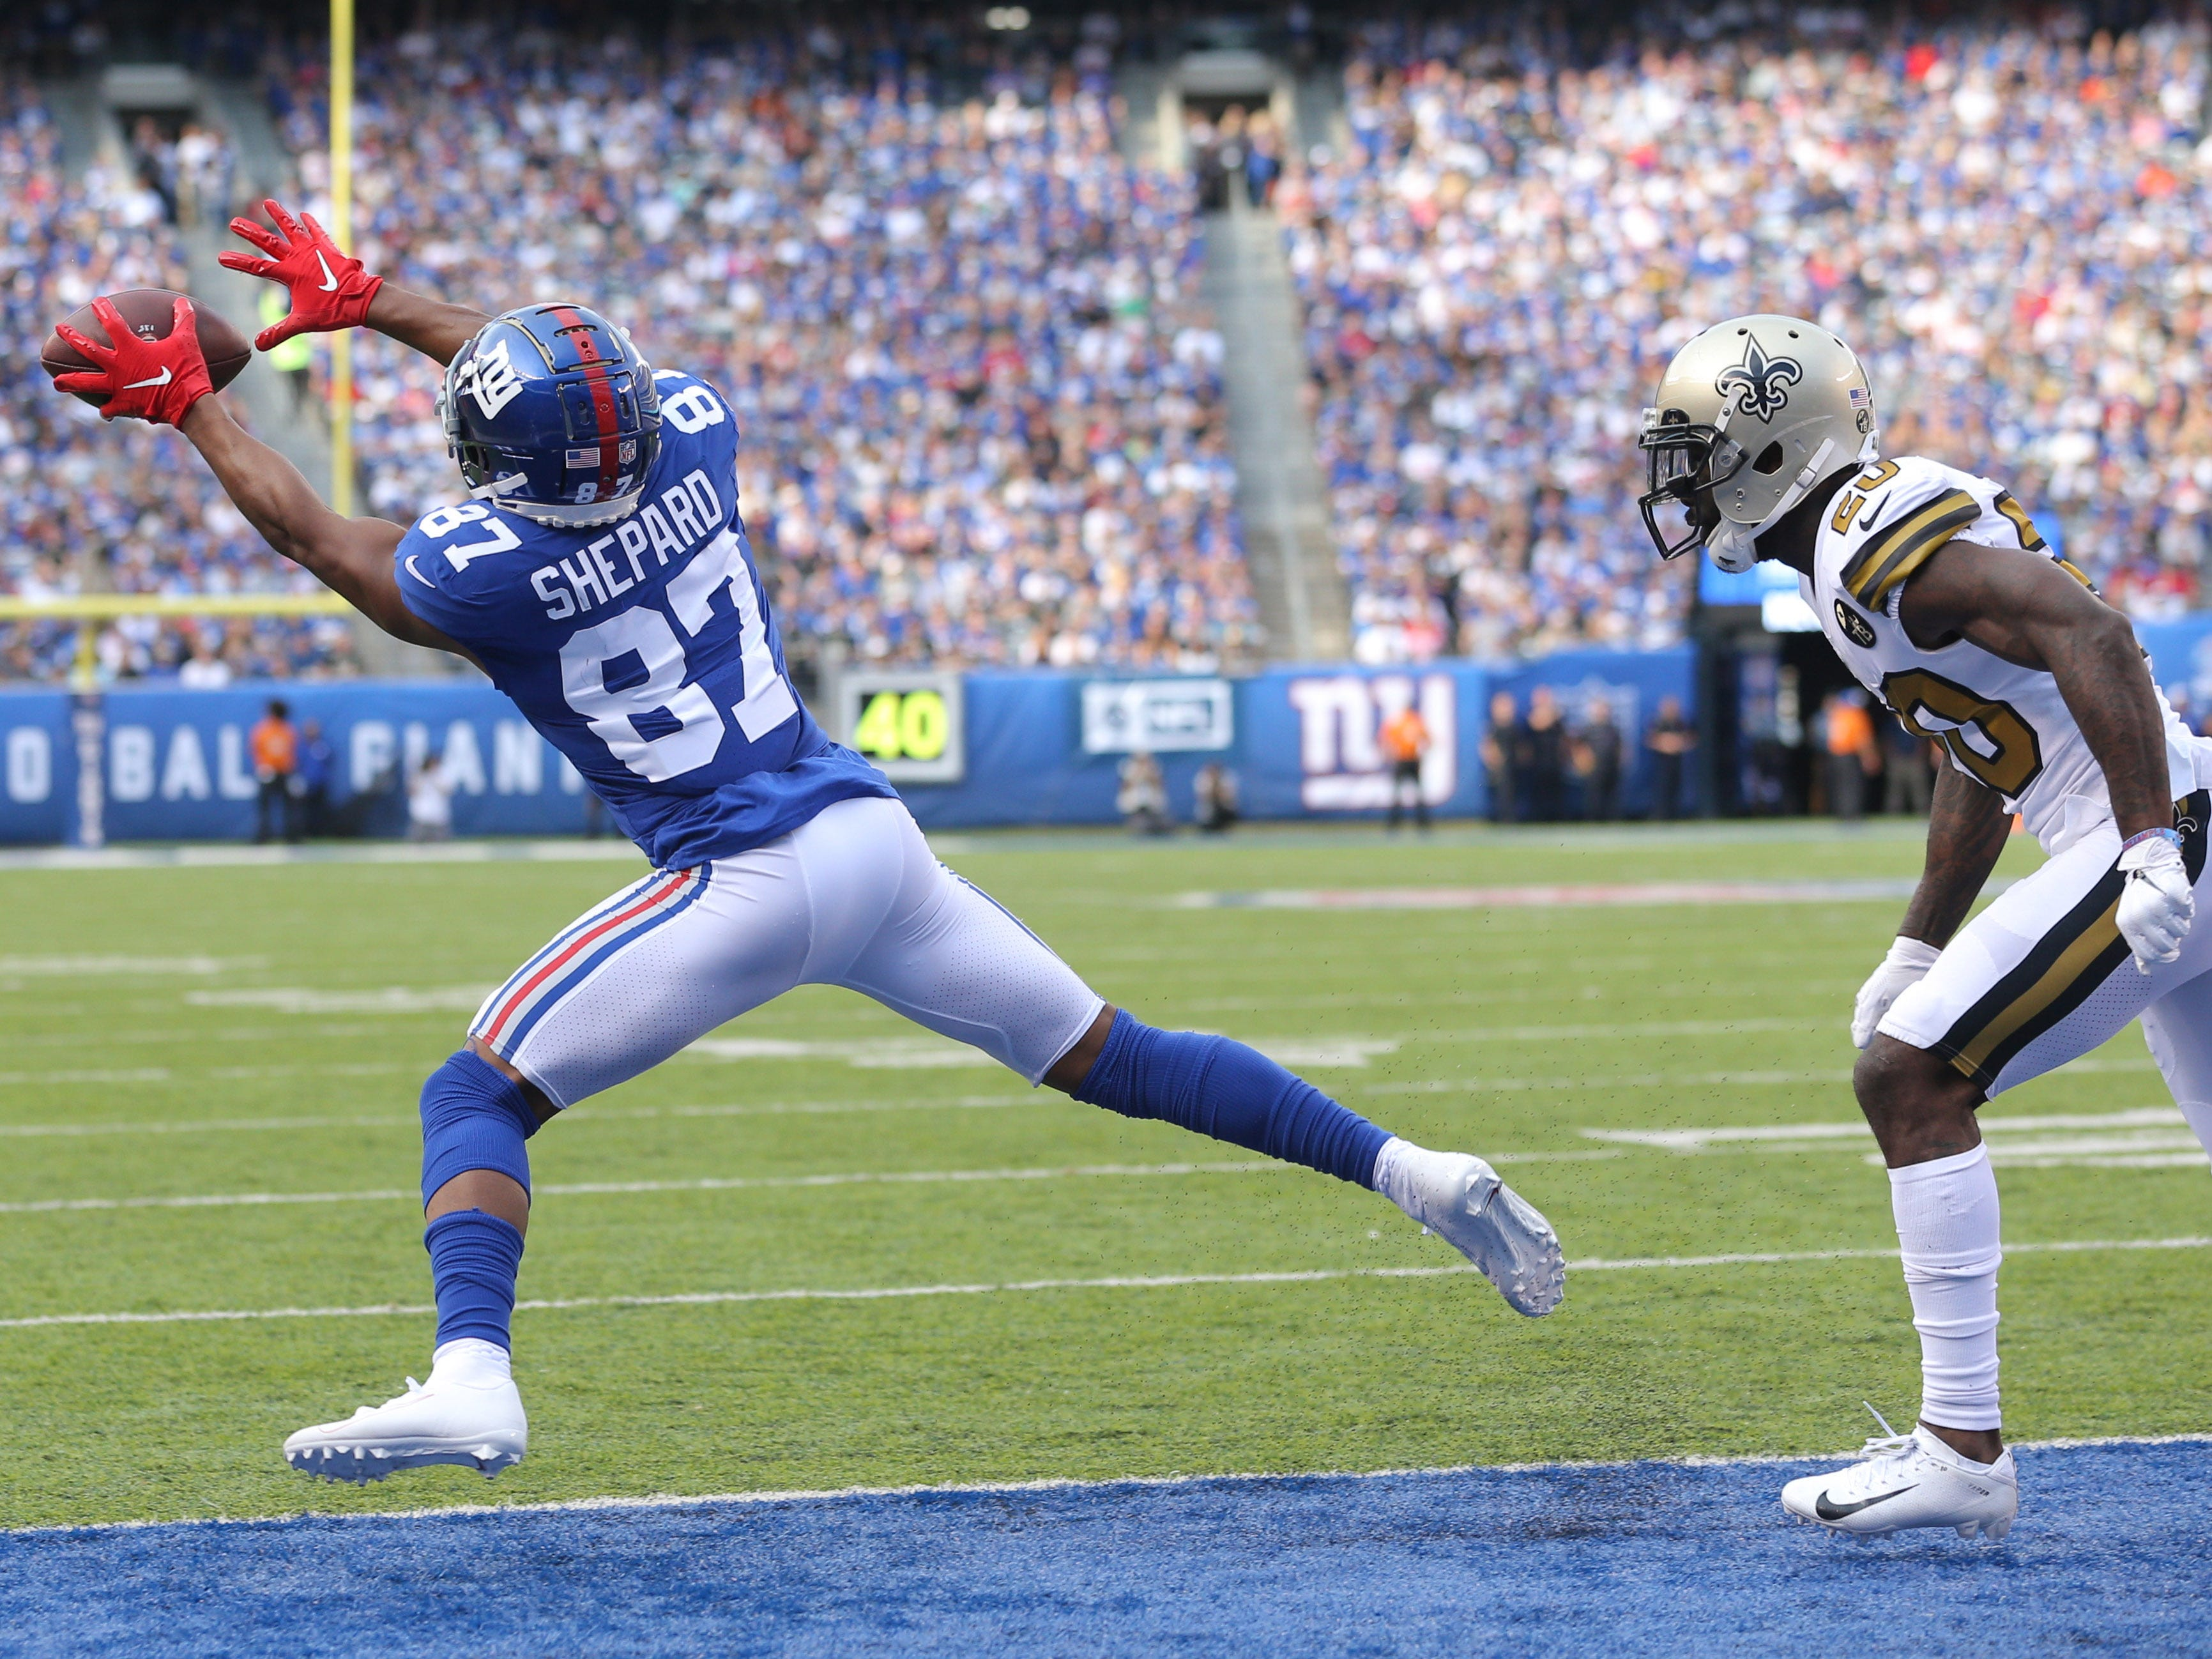 New York Giants wide receiver Sterling Shepard catches a touchdown pass against the New Orleans Saints.